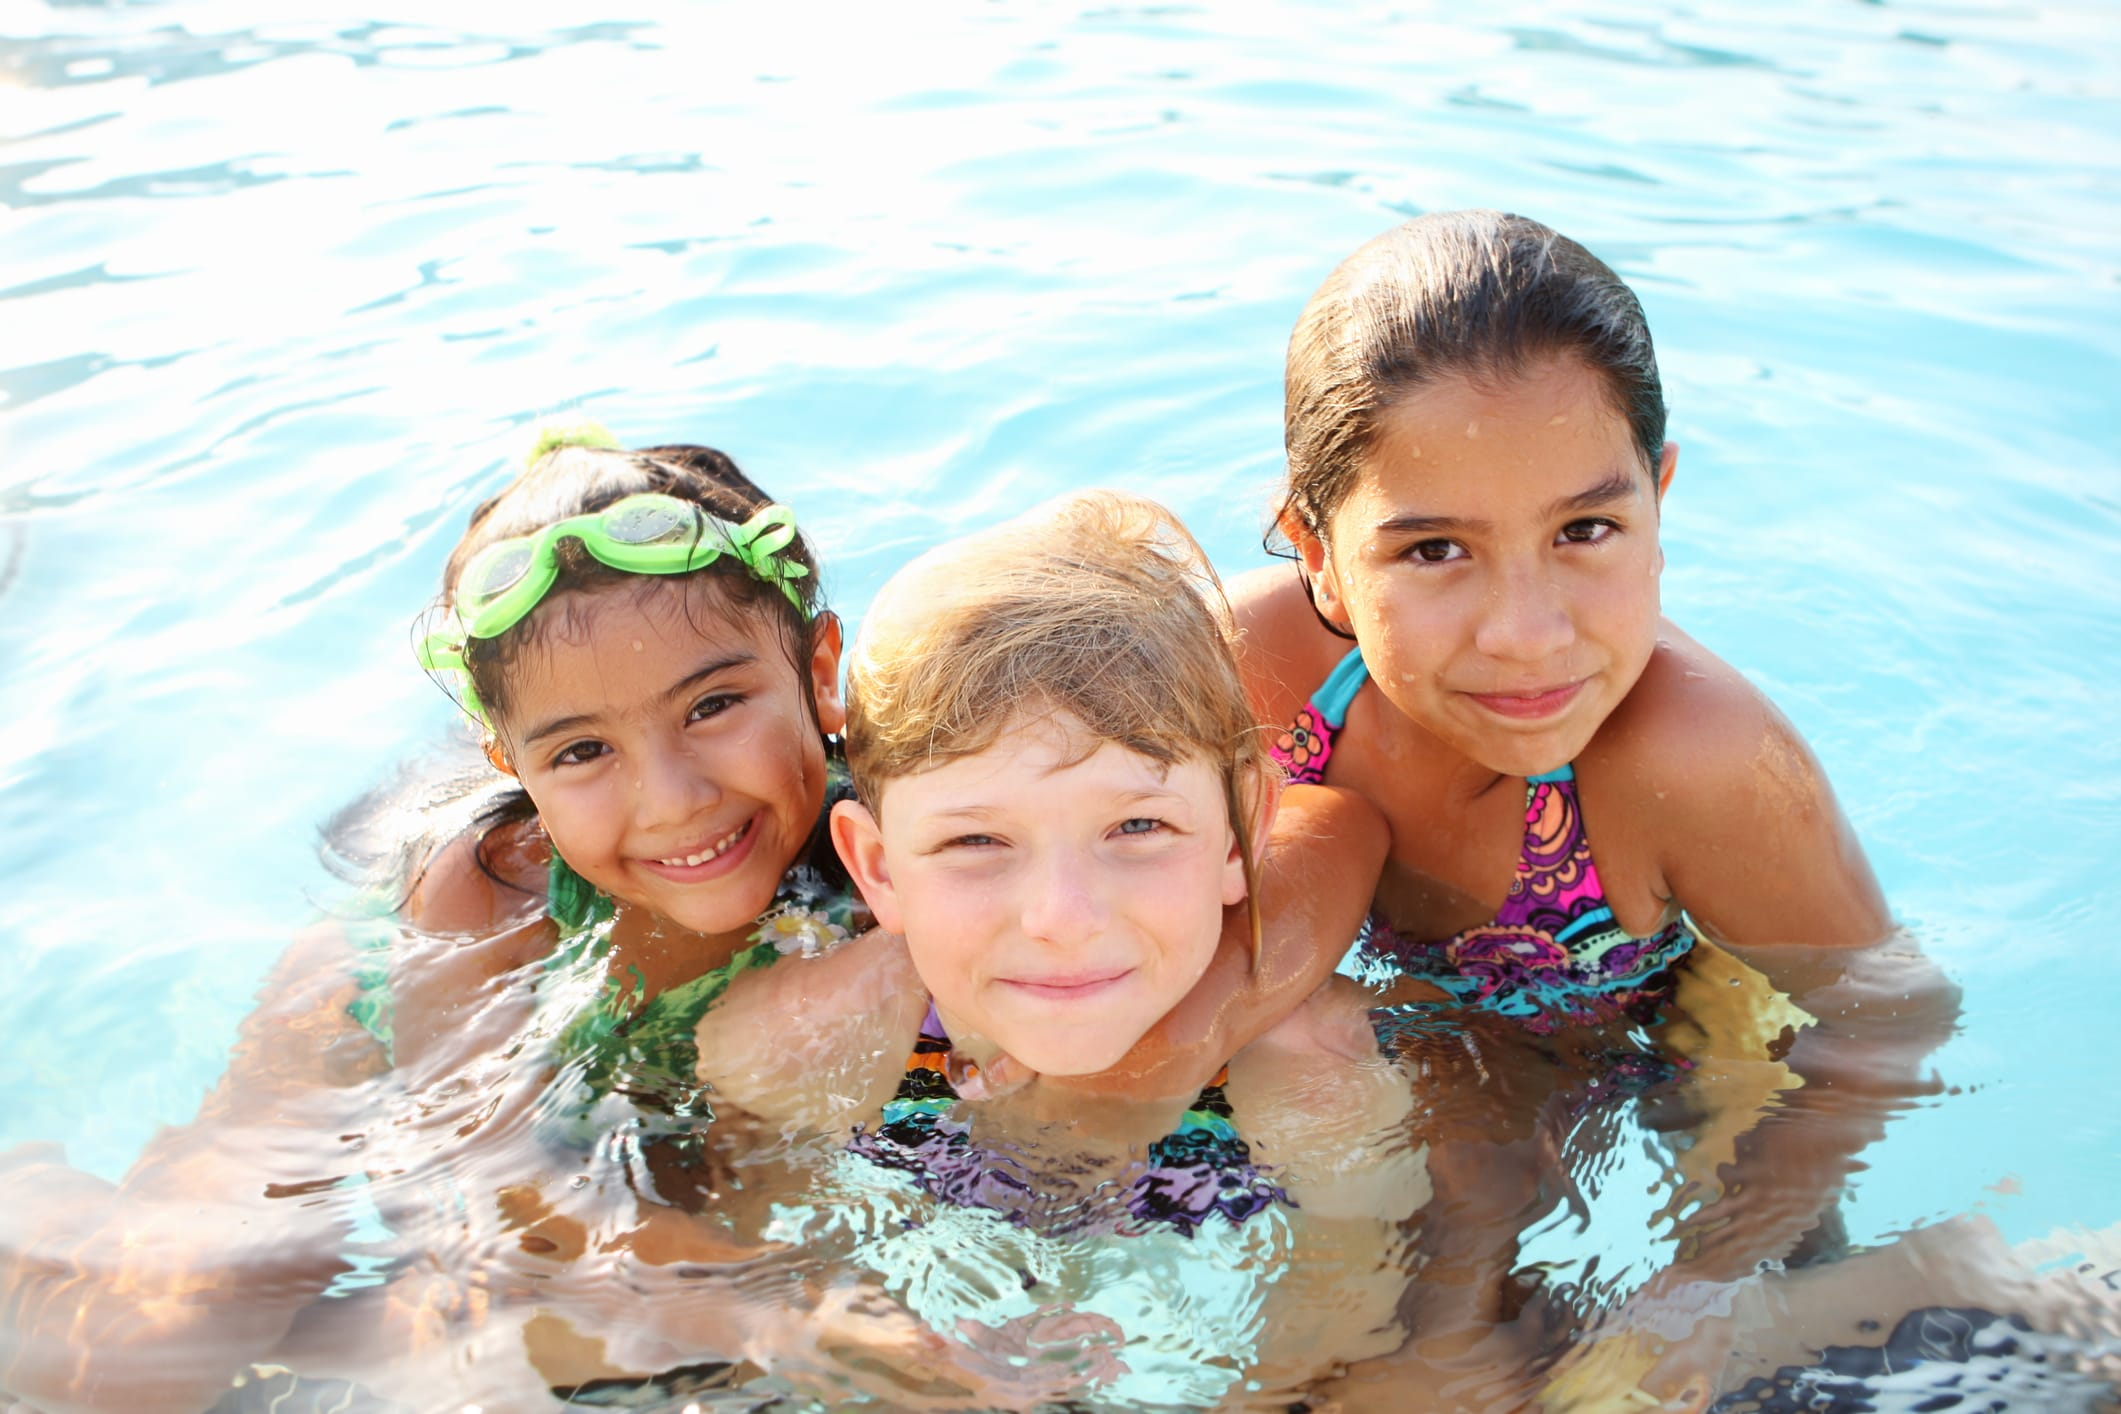 How Can I Keep My Child Safe in the Pool or at a Lake?